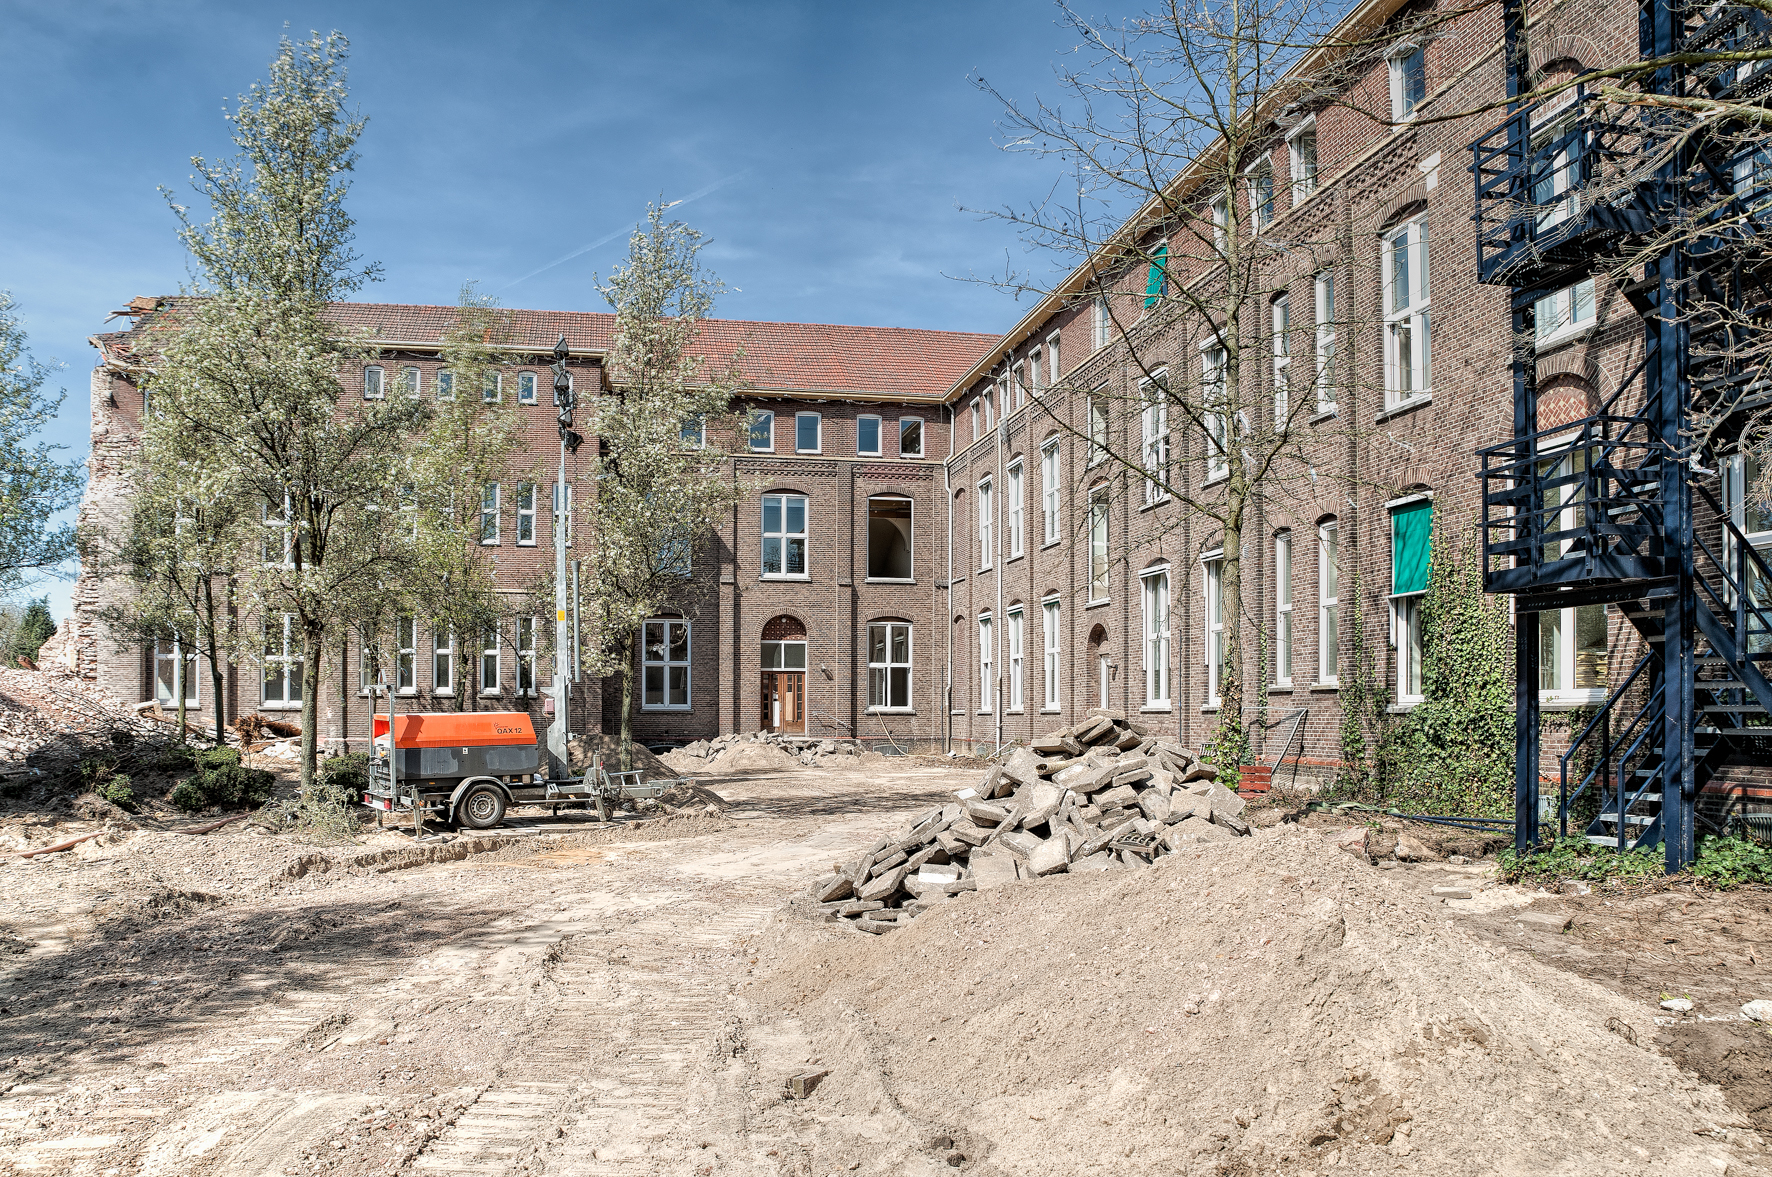 Rector_Driessenstraat-104.jpg